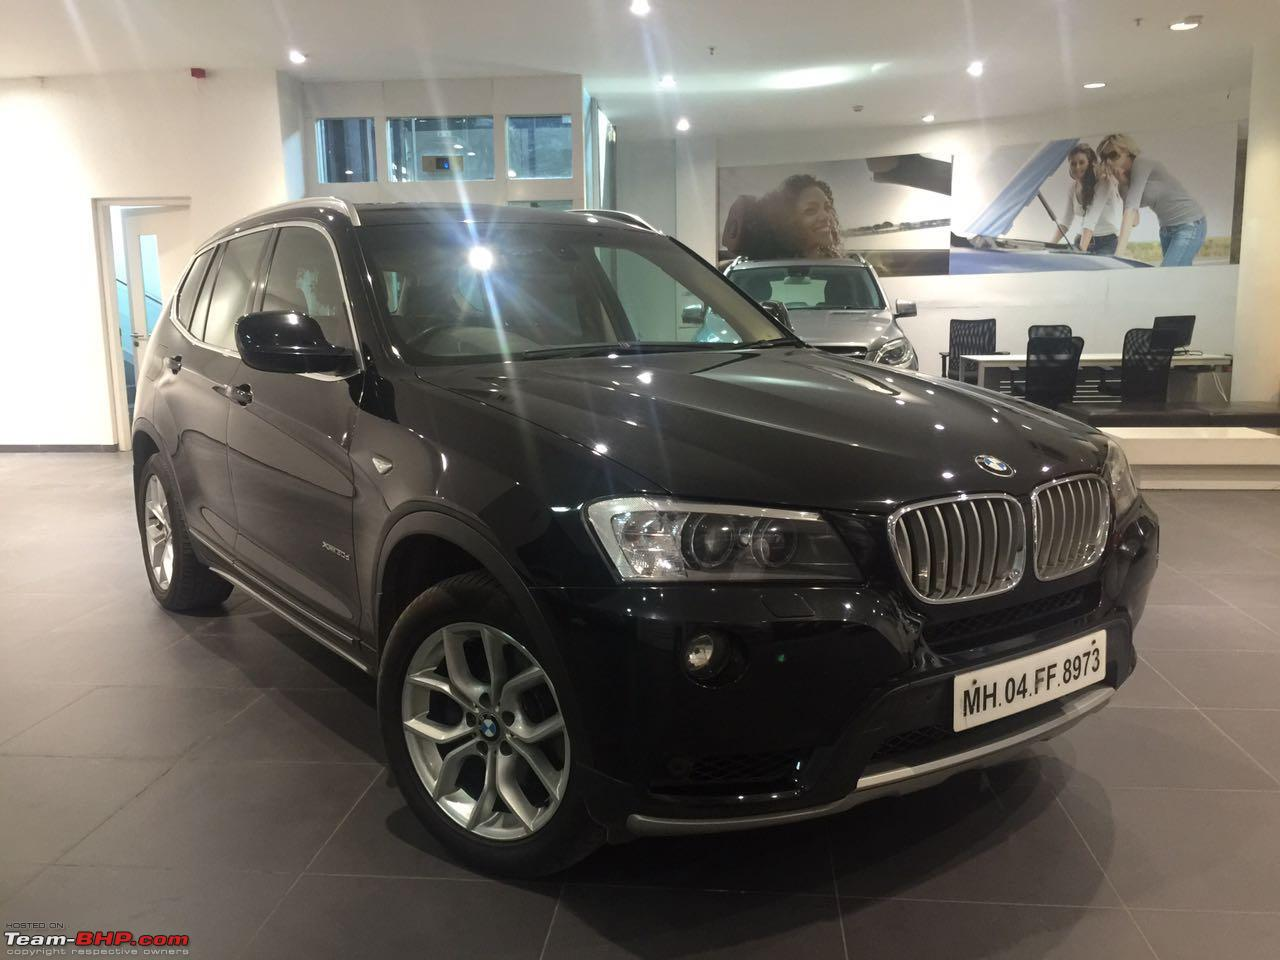 BMW X3 (F25) at 130,000 km - Spends 25% of its time in the workshop